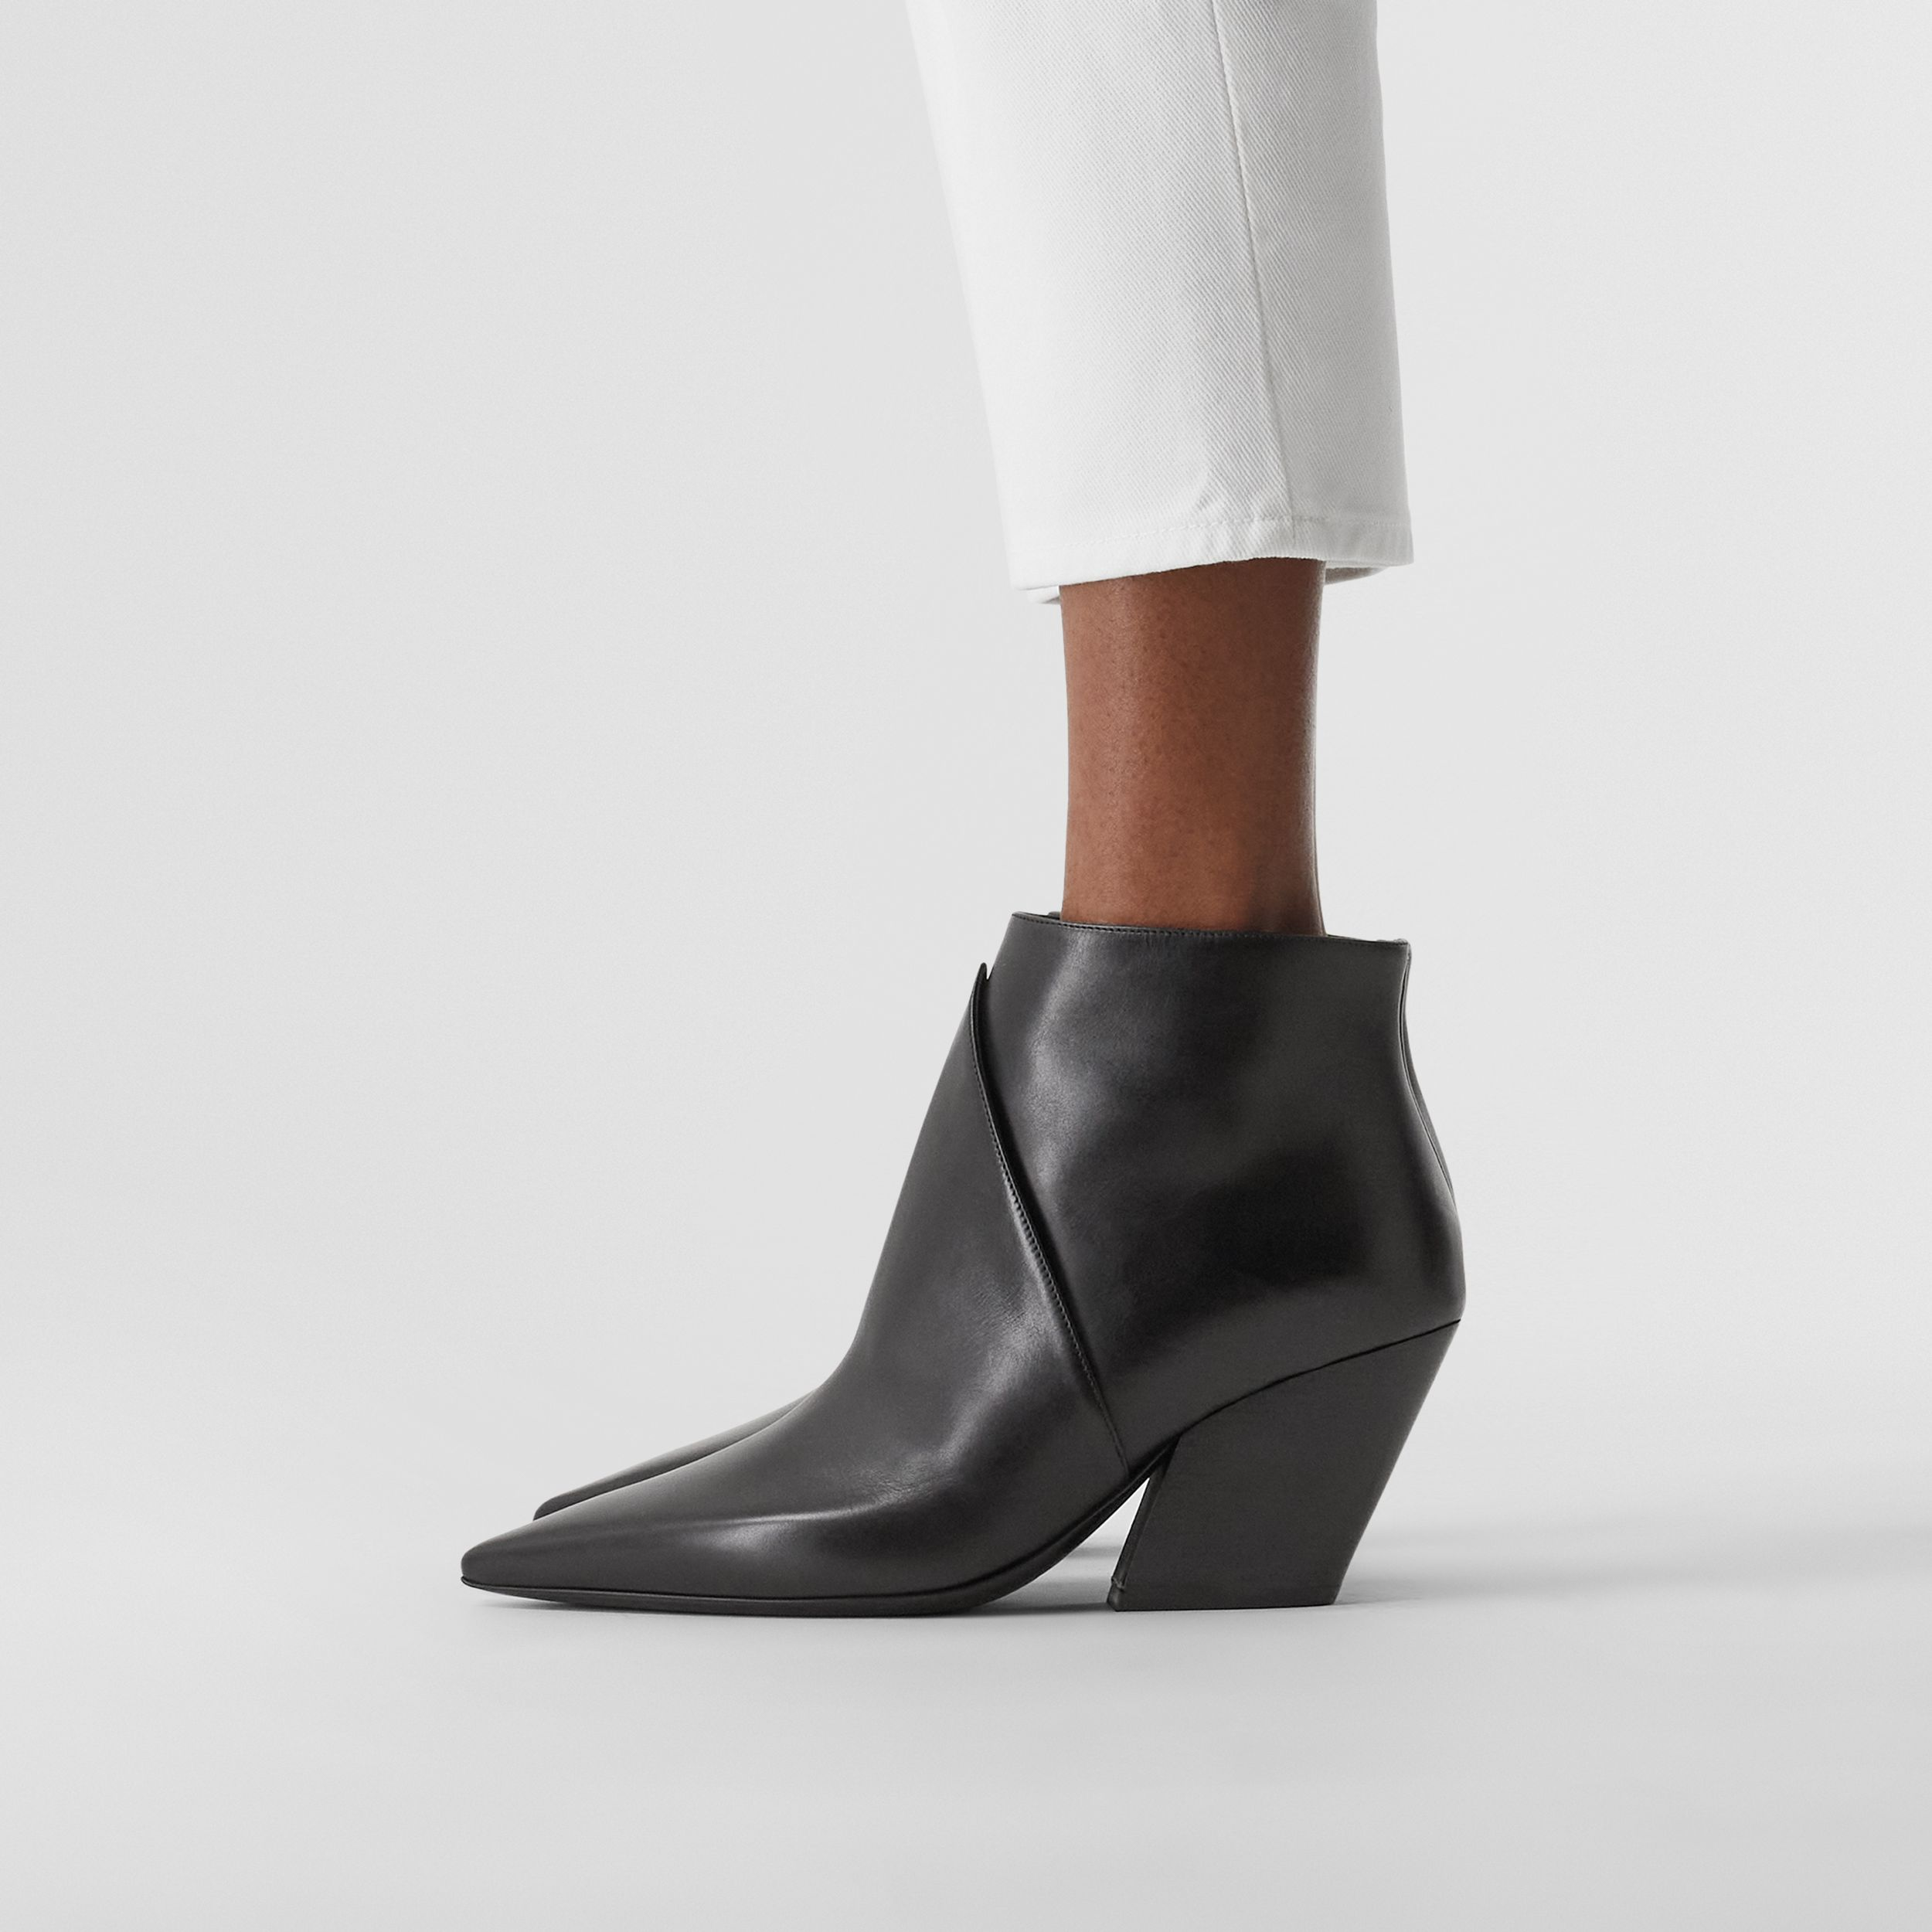 Leather Ankle Boots in Black - Women | Burberry United States - 3